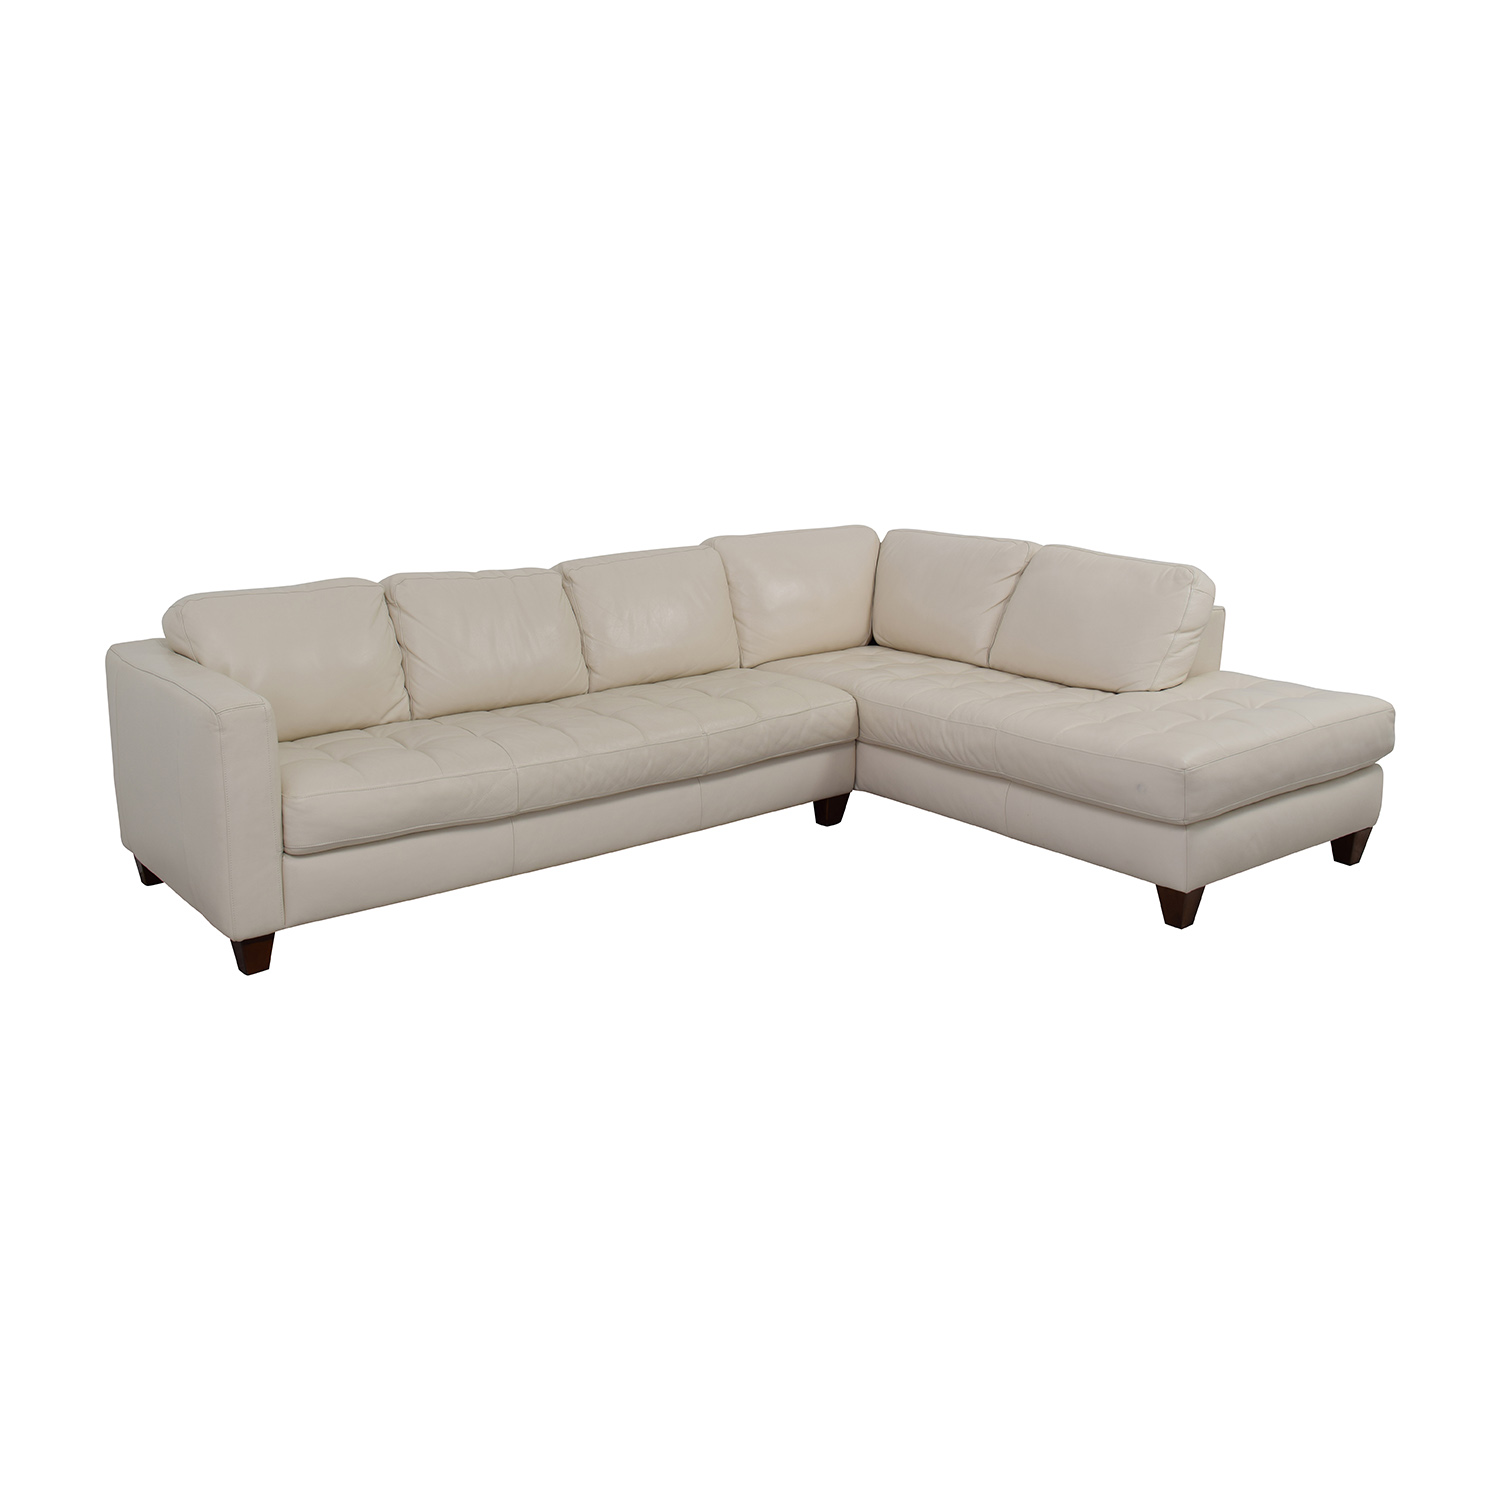 macy chairs recliners wedding chair rentals cheap 72% off - macy's milano white leather two piece sofa / sofas